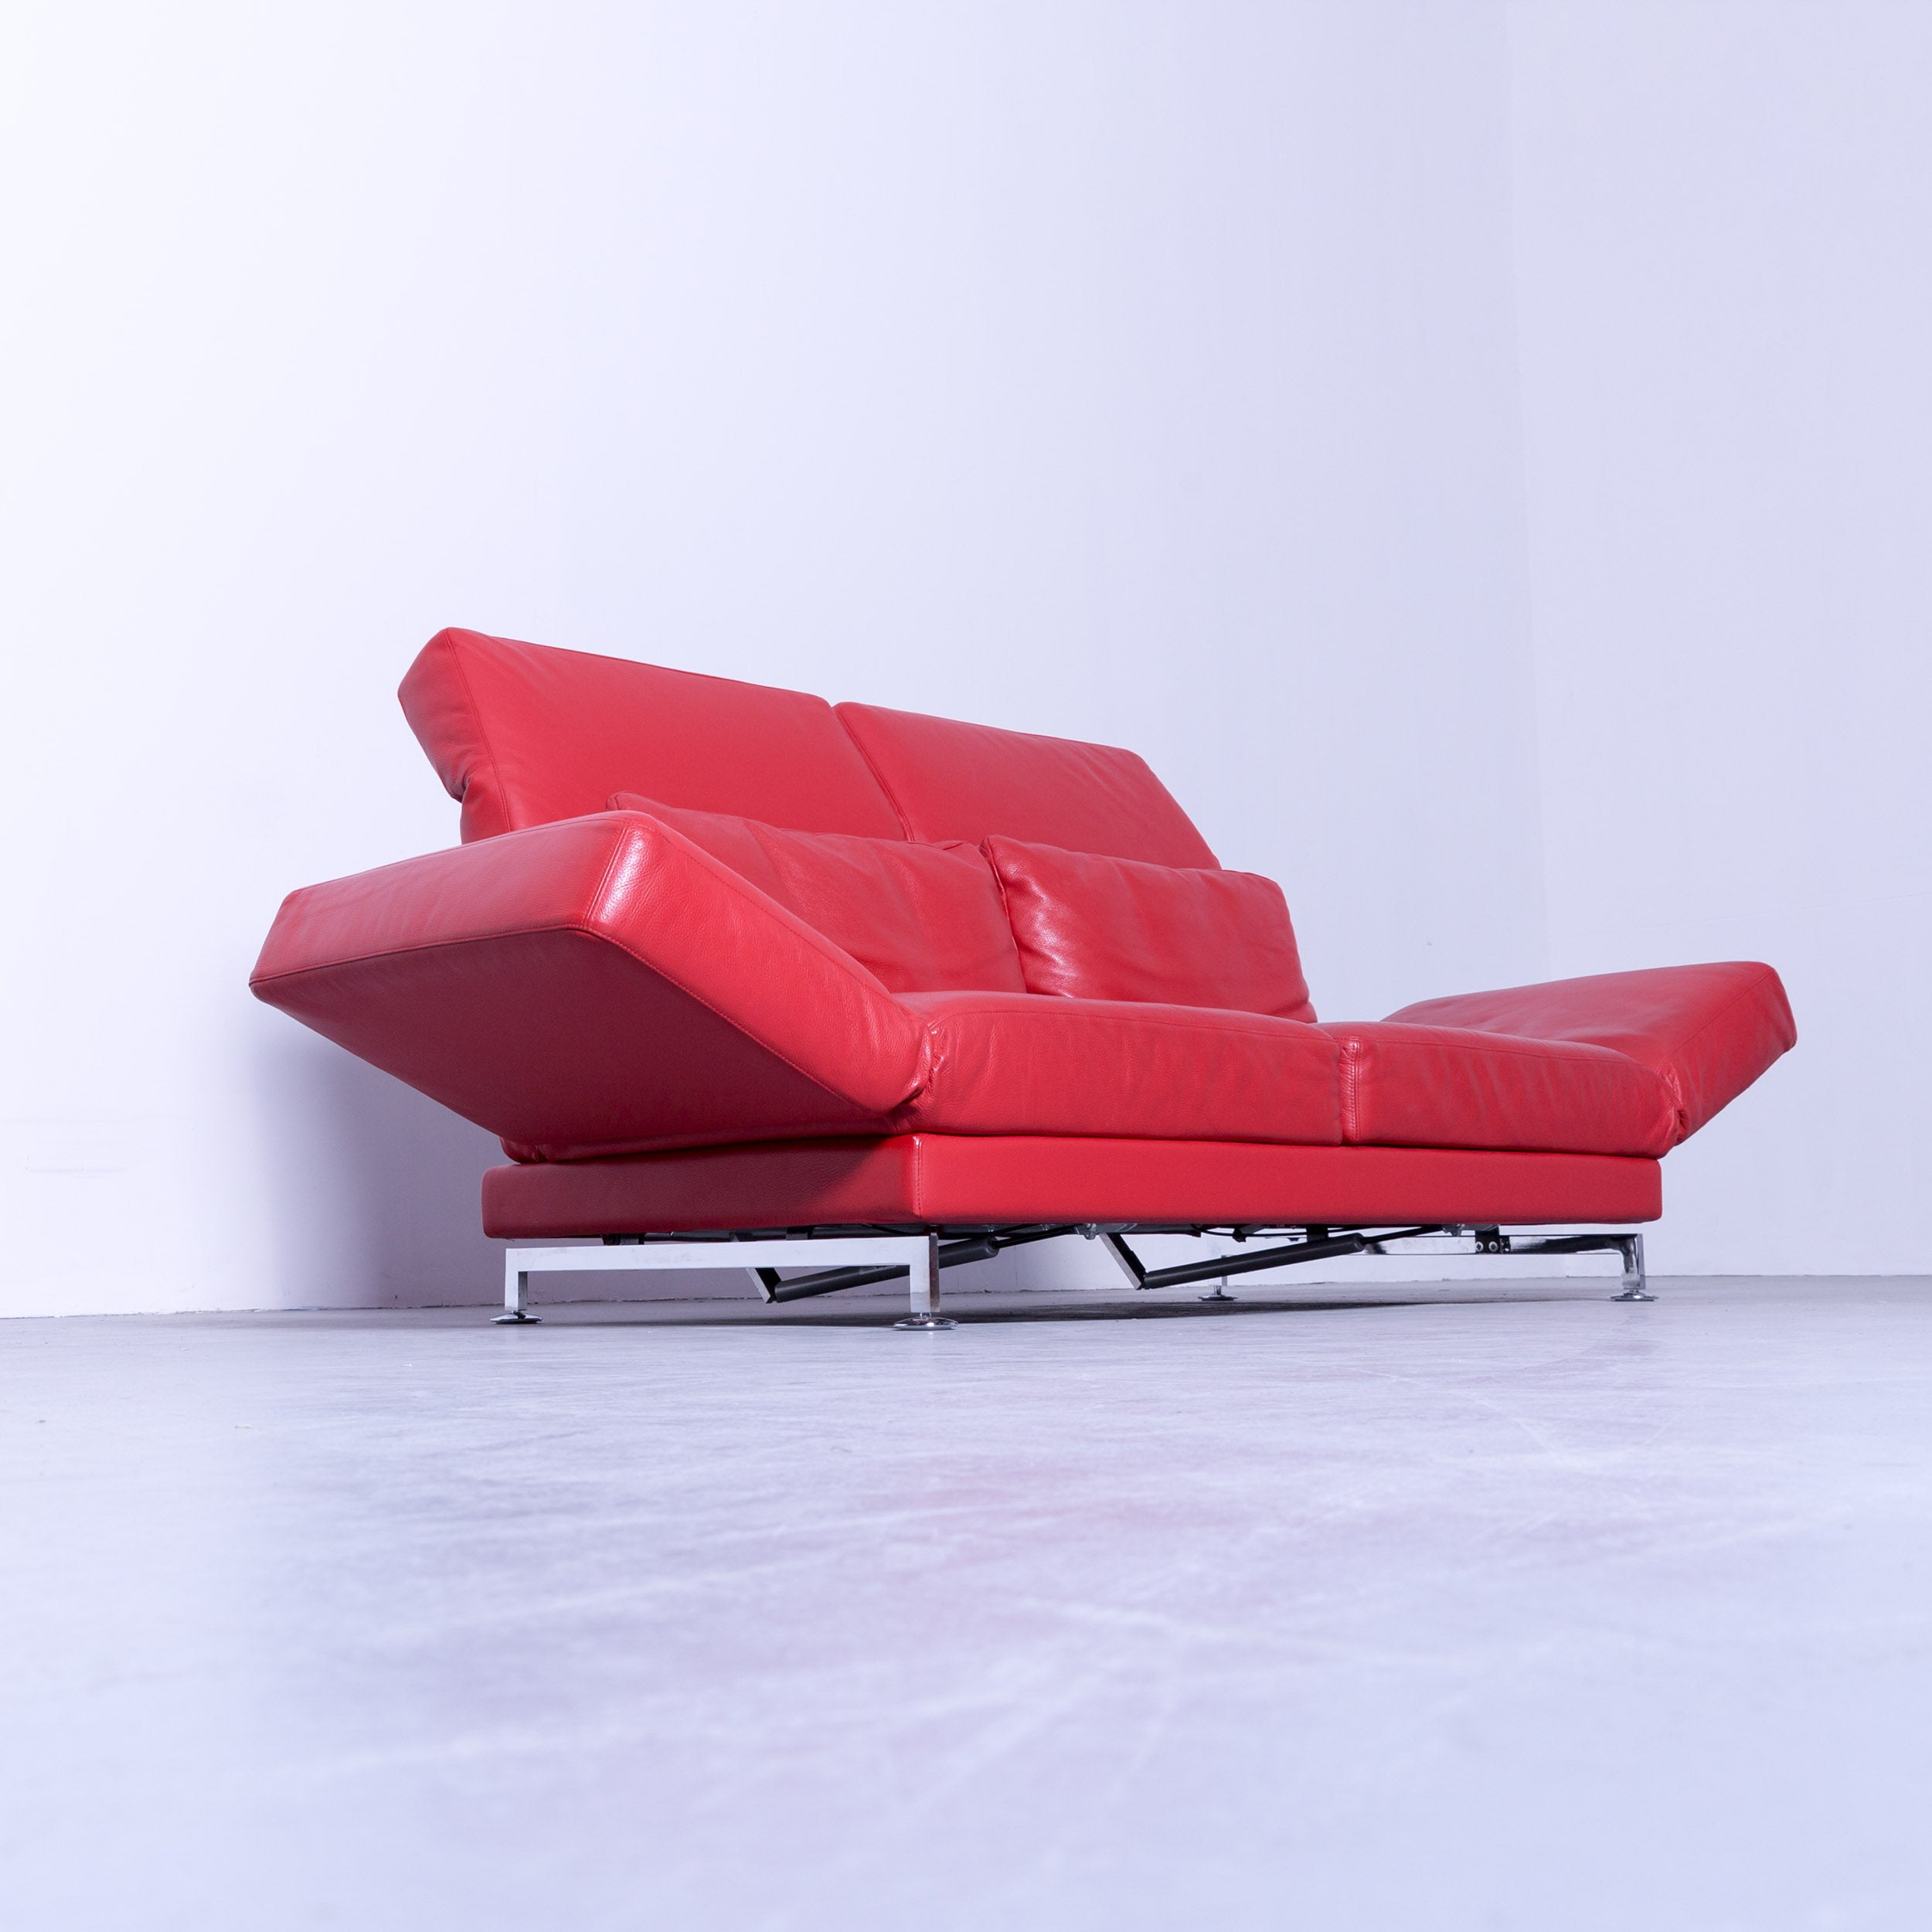 Brühl Moule Ecksofa Gebraucht Brühl Sippold Moule Designer Sofa Leather Red Two Seat Couch Function Relax